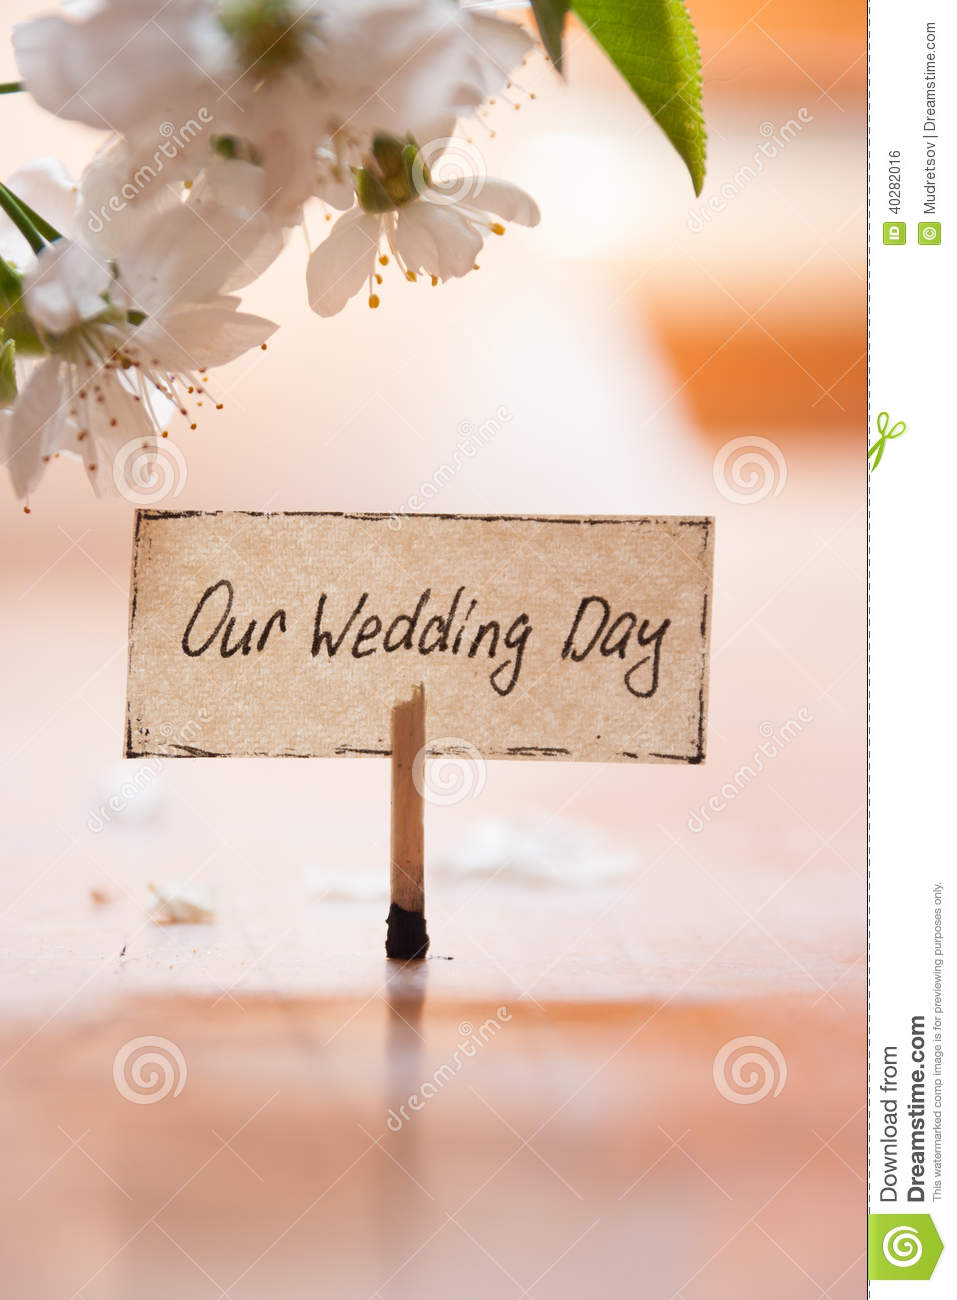 wedding flowers background photo - 1